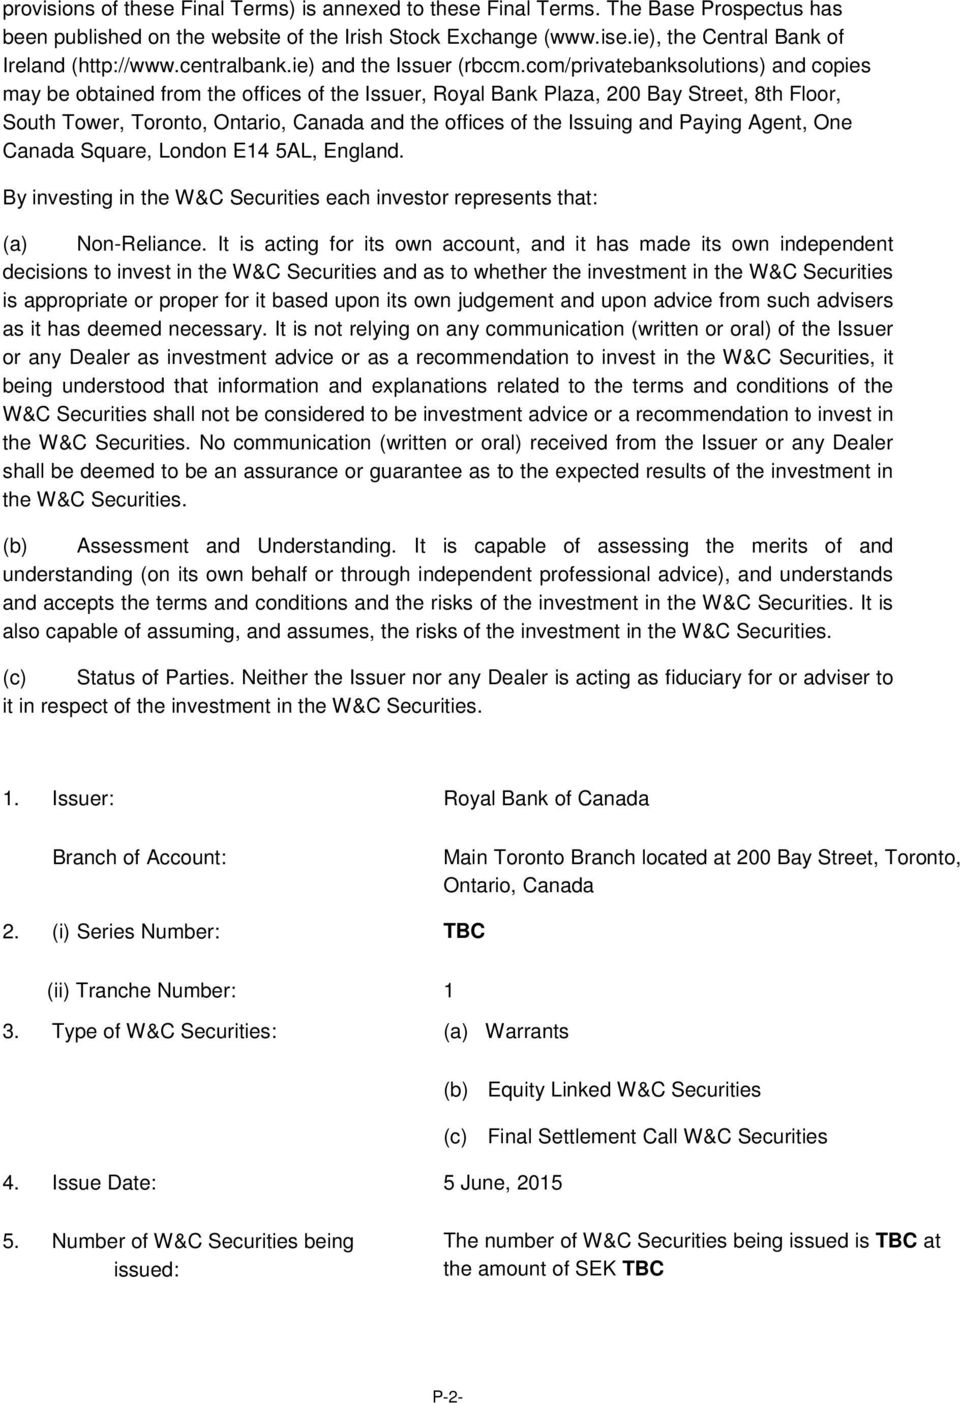 com/privatebanksolutions) and copies may be obtained from the offices of the Issuer, Royal Bank Plaza, 200 Bay Street, 8th Floor, South Tower, Toronto, Ontario, Canada and the offices of the Issuing